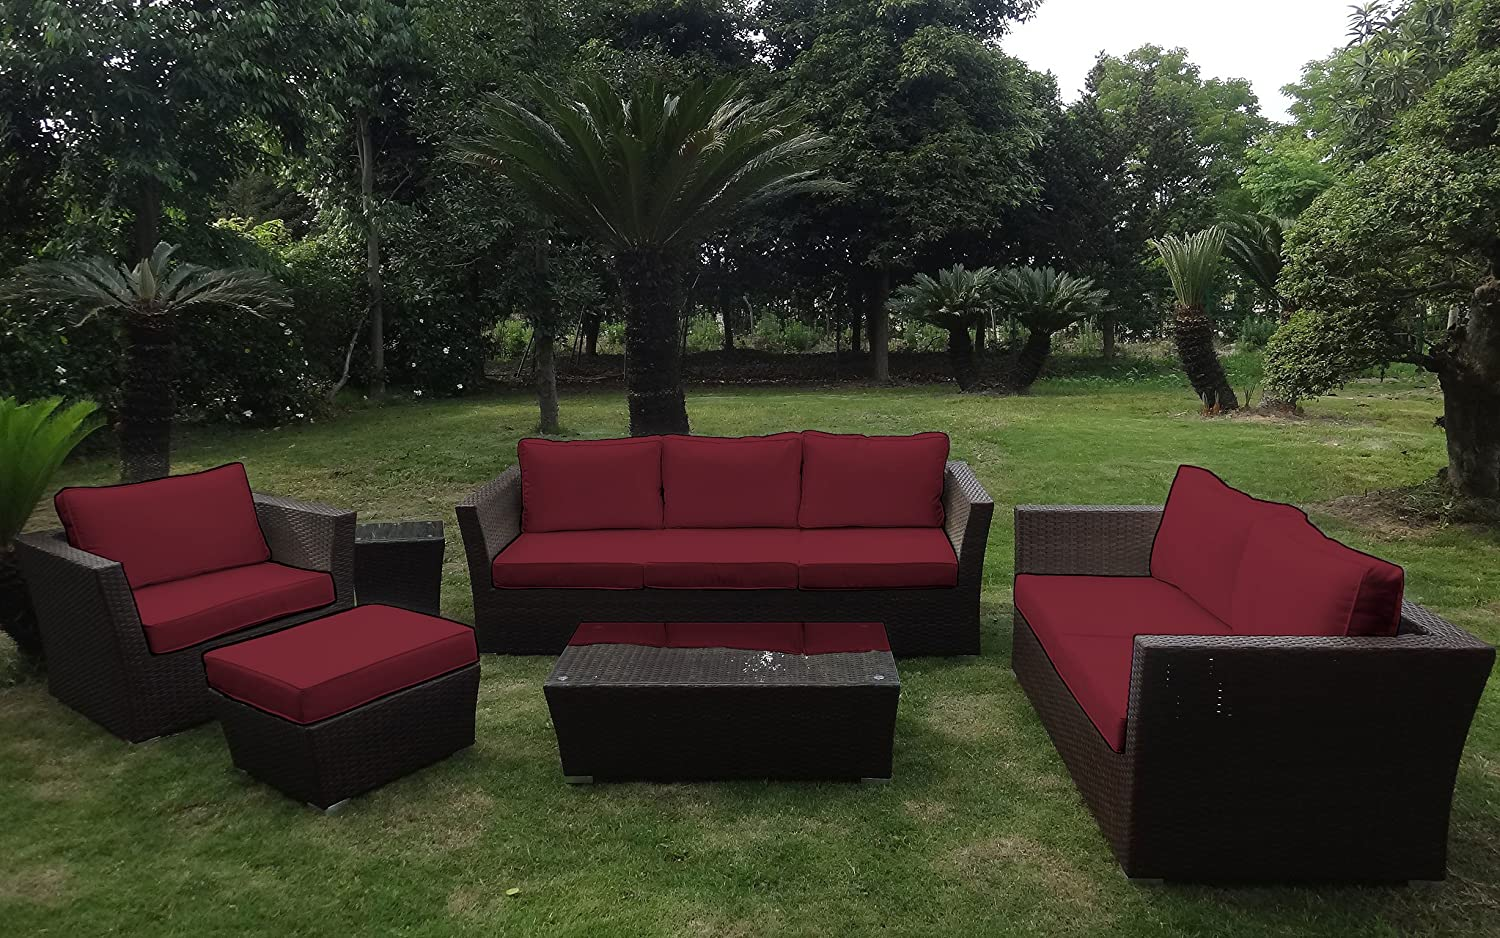 baidani rattan garten lounge treasure braun meliert rot g nstig kaufen. Black Bedroom Furniture Sets. Home Design Ideas